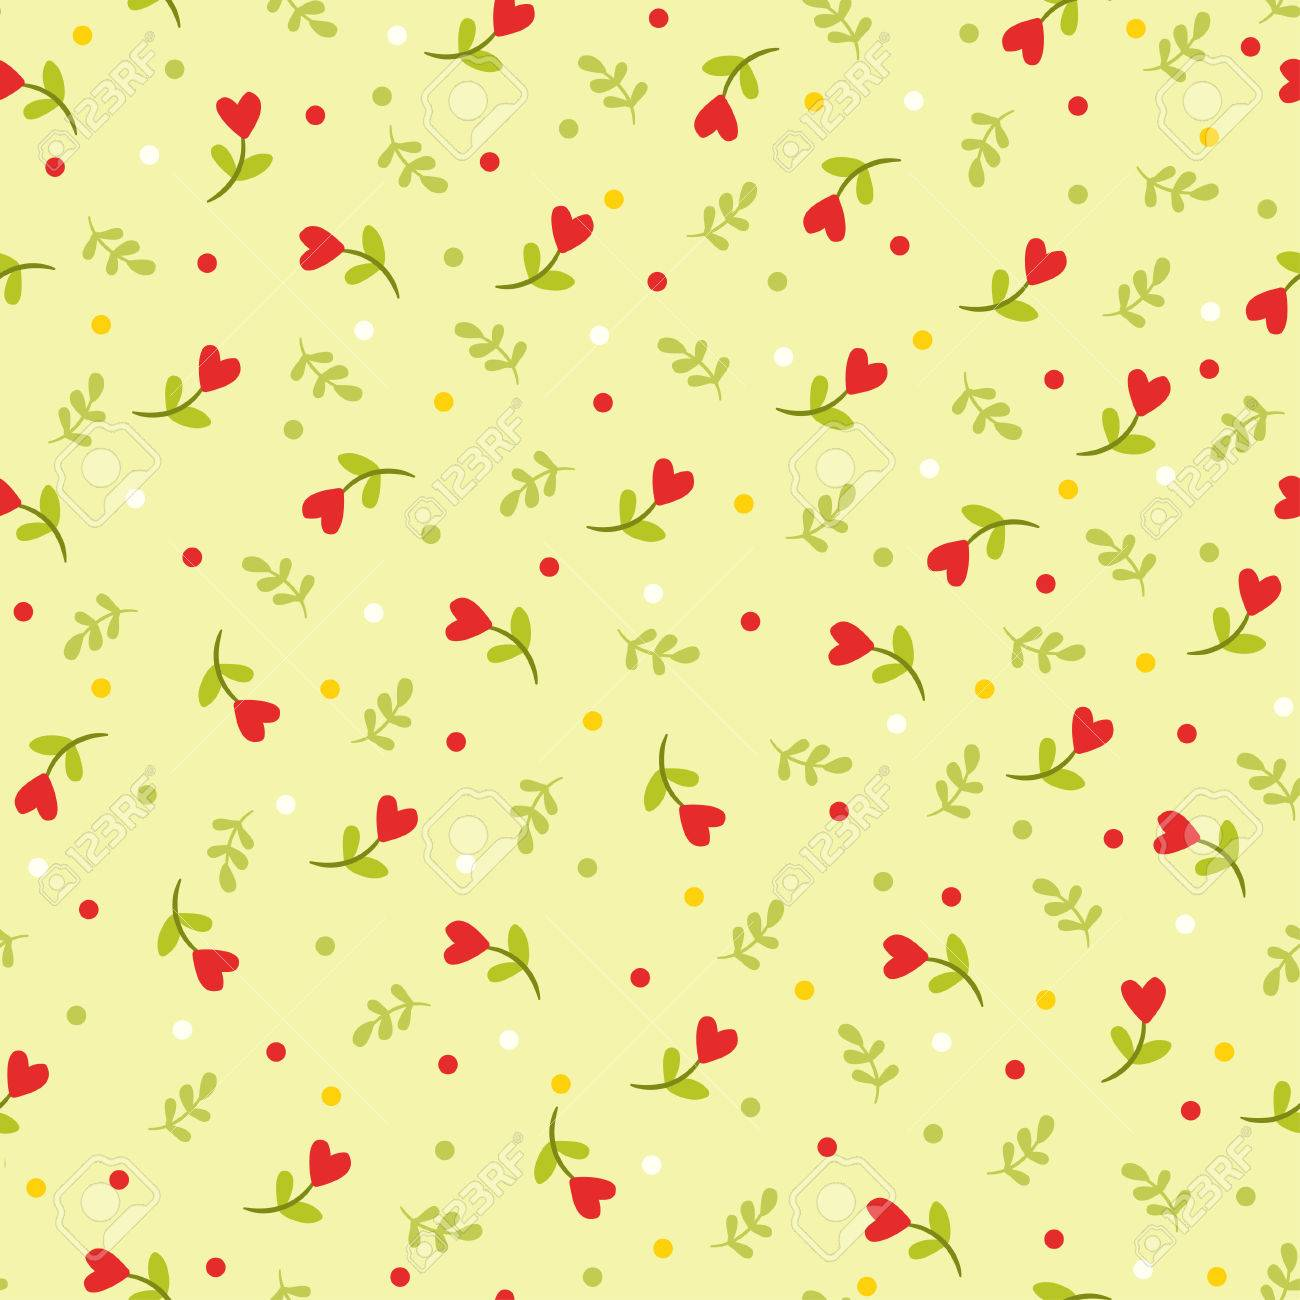 Vector illustration of flowers and leaves. - 46448722